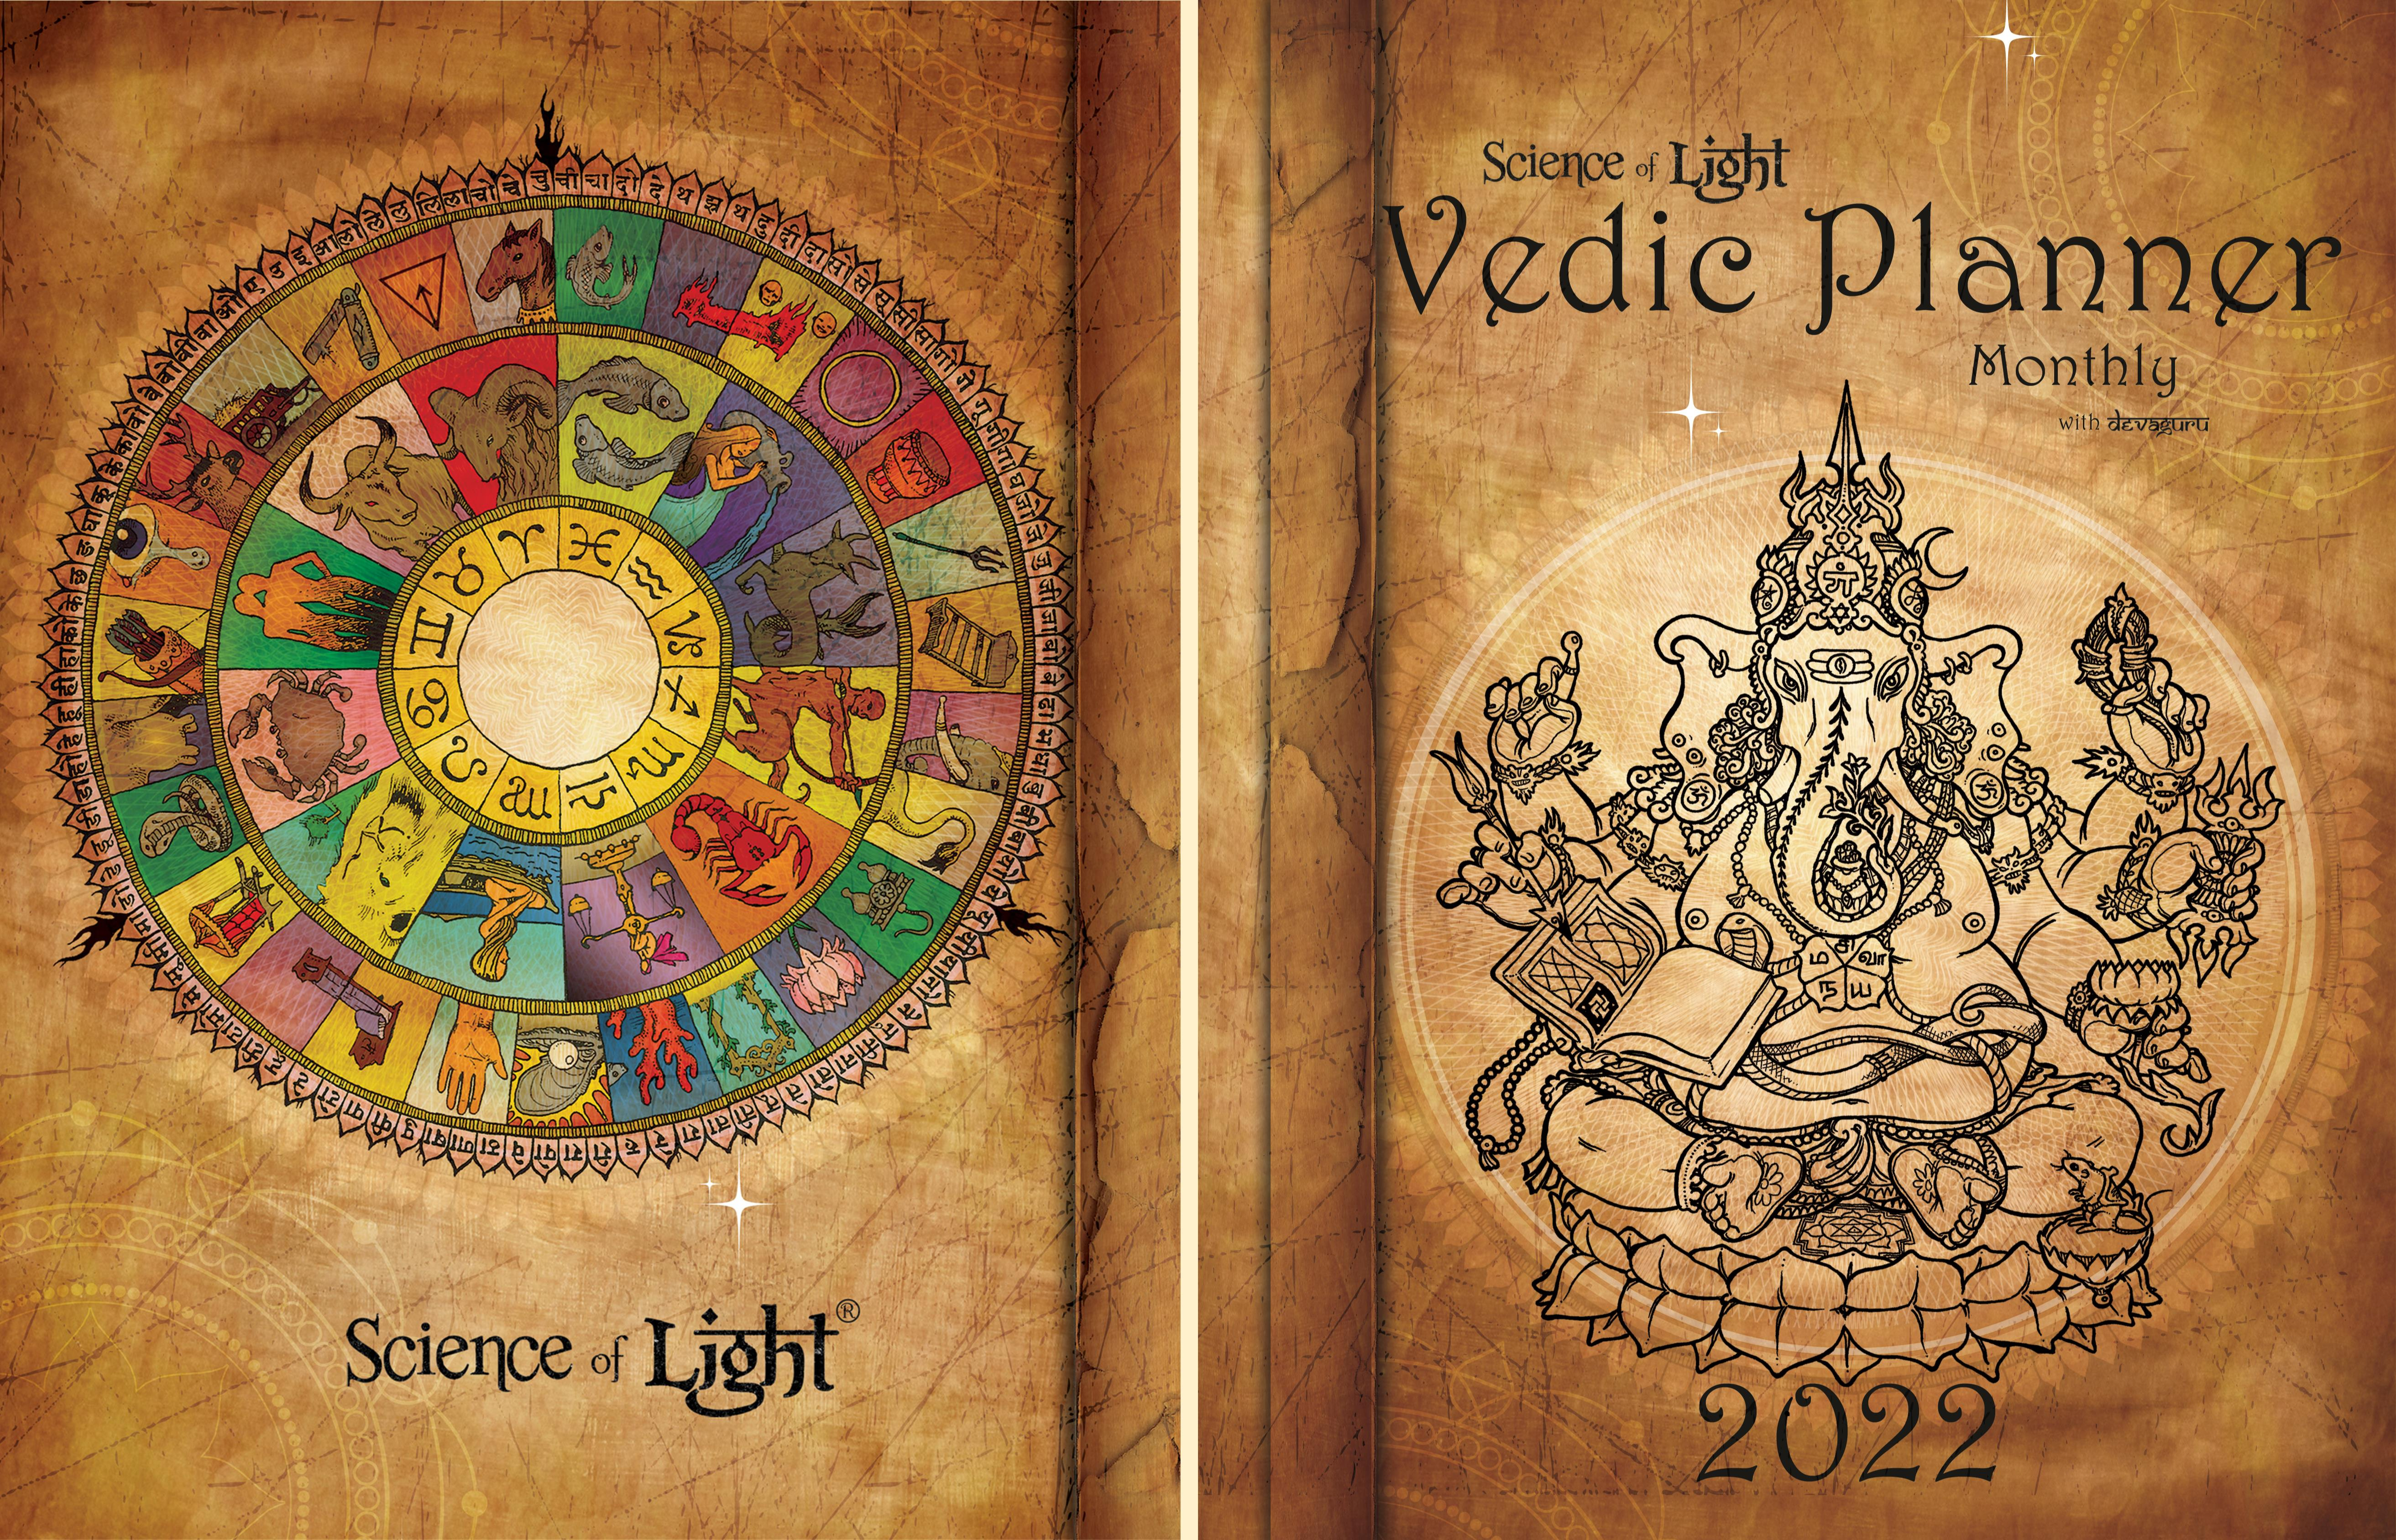 2021 Vedic Planner cover image